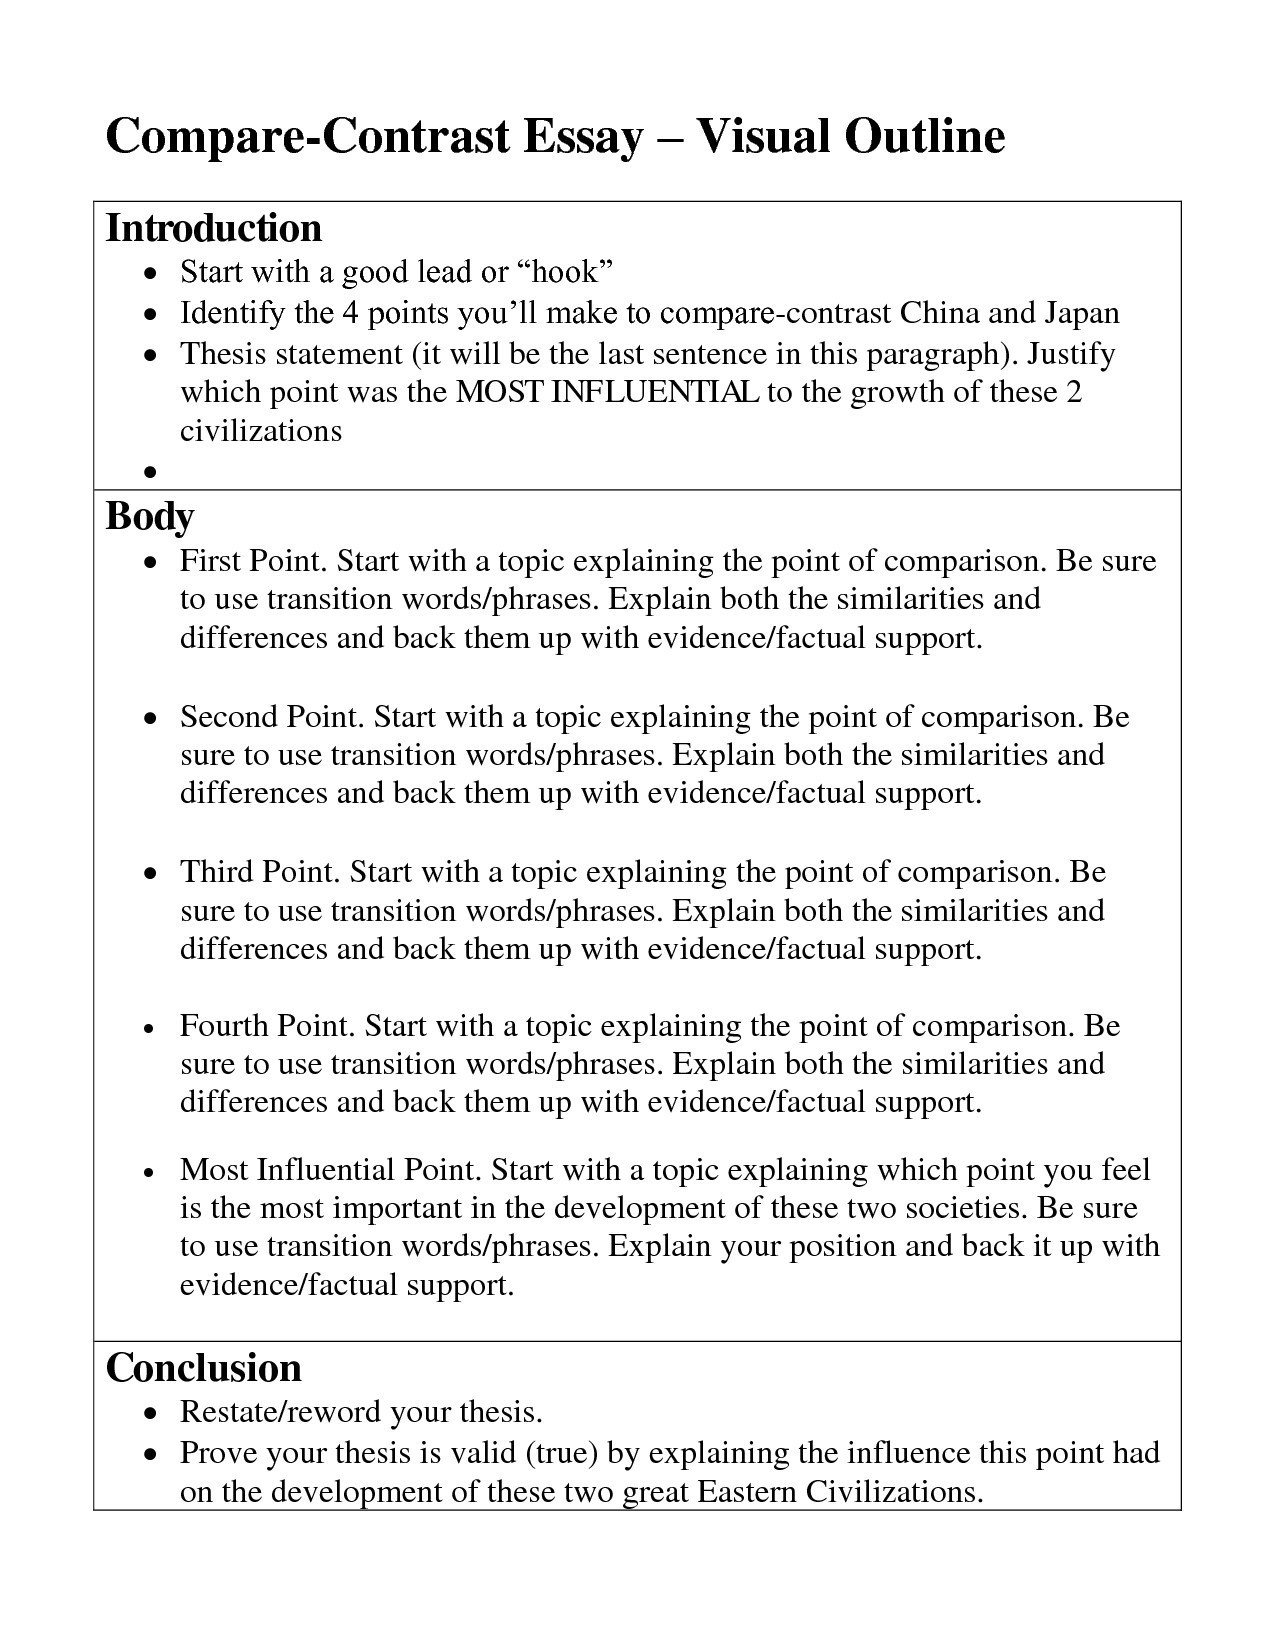 019 Essay Example Writing Good Hooks Worksheet Refrence Laws Fresh How To Write Hook For An Ess Argumentative Narrative The Best College Sentence